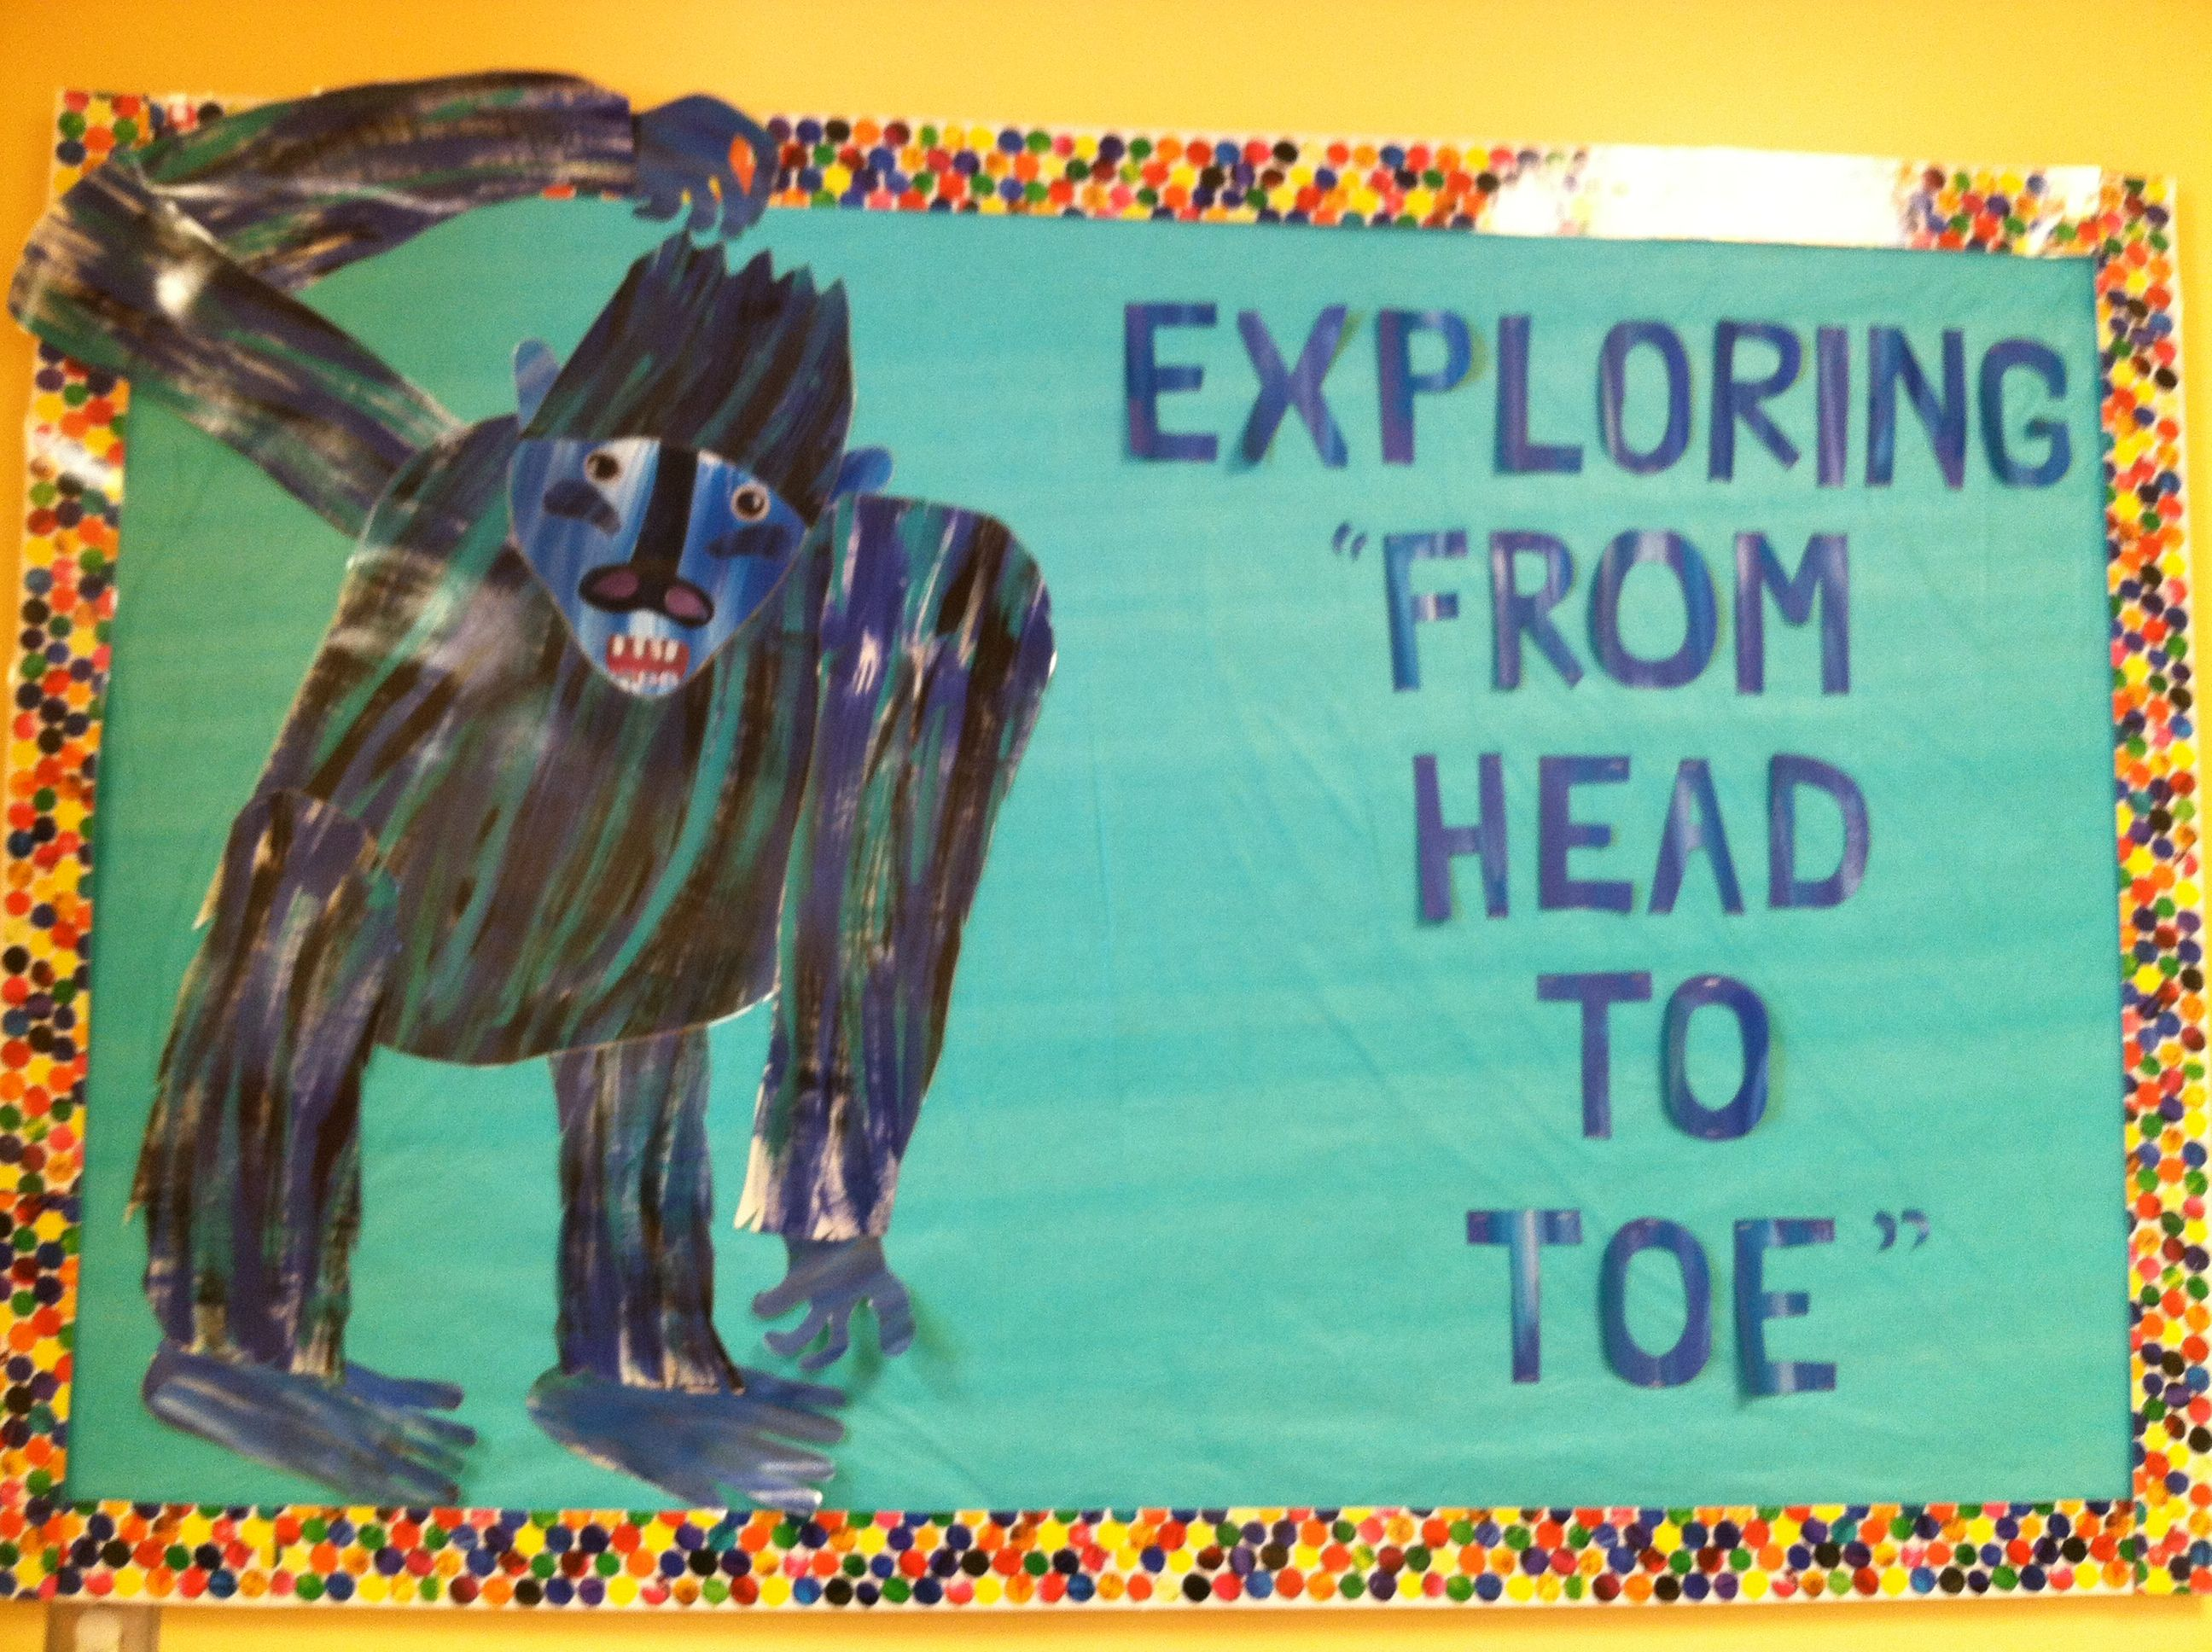 From Head To Toe Eric Carle Bulletin Board